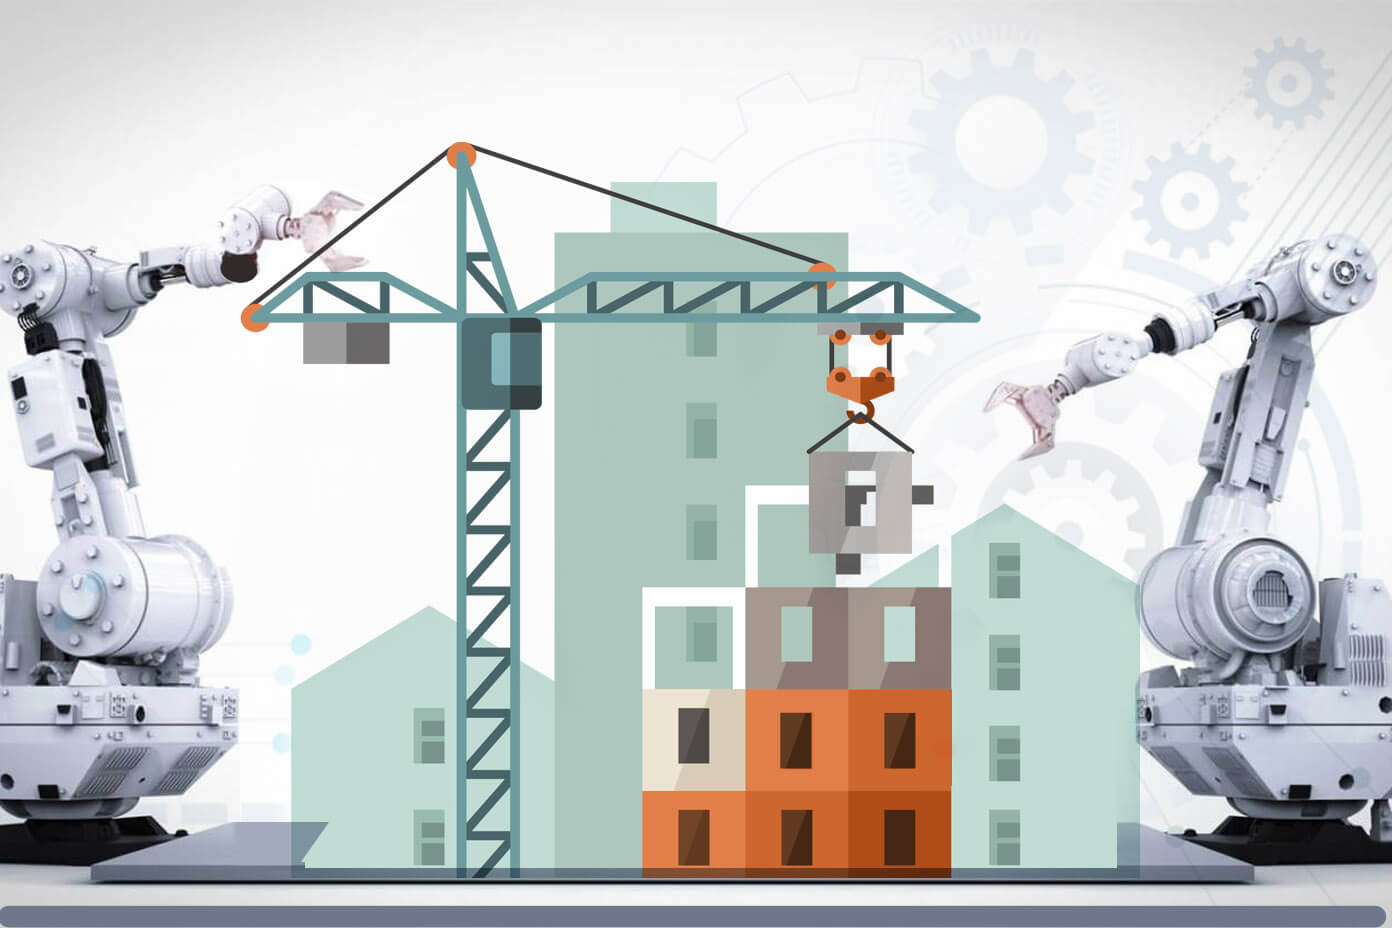 Construction Robots Industry Benefits from the Pandemic